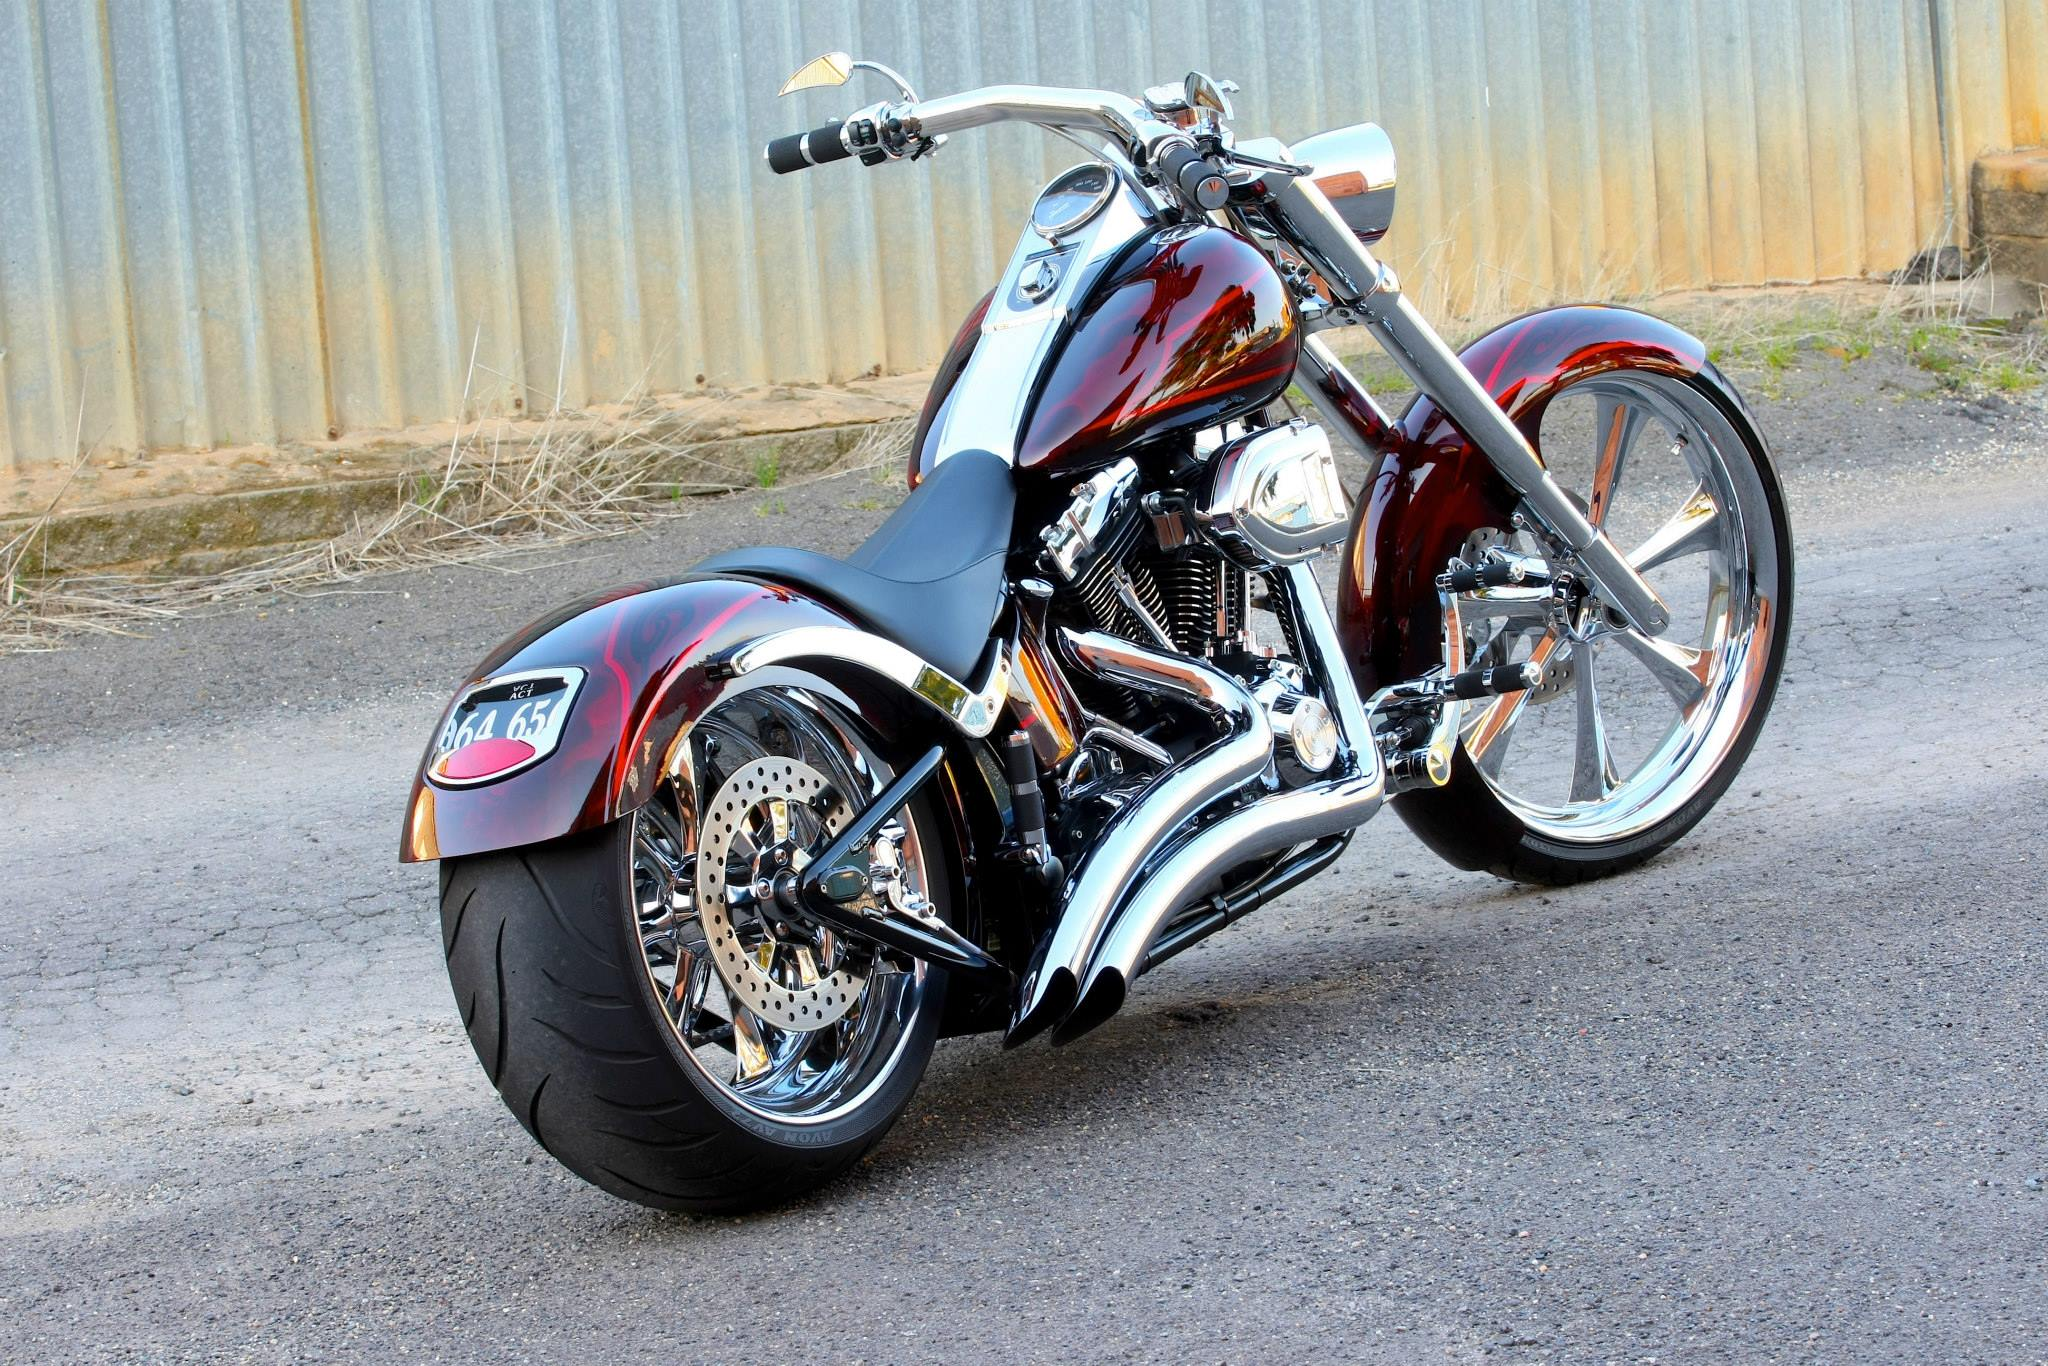 Harley Davidson Fatboy Custom Star Cars Agency